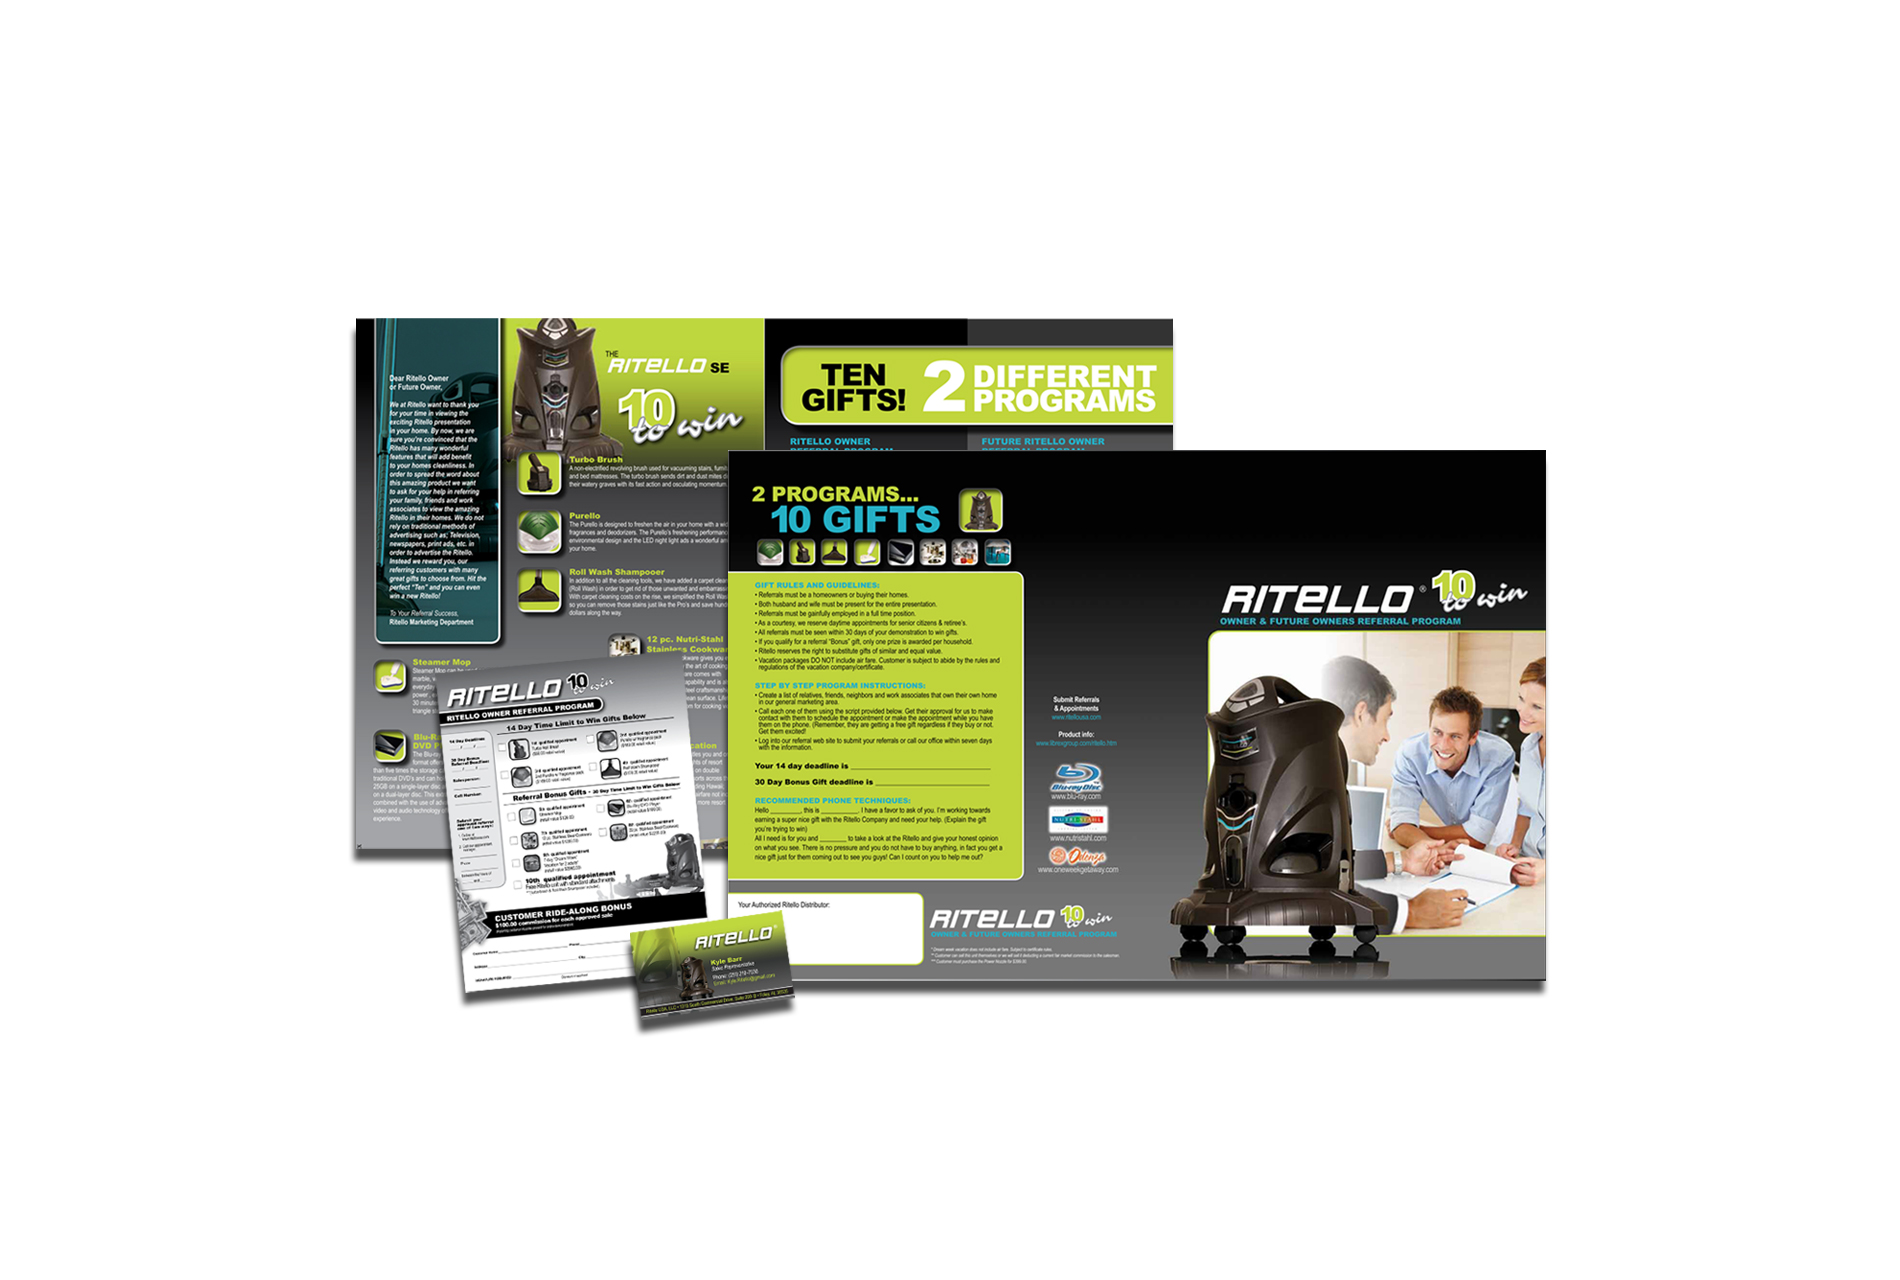 Ritello Marketing Brochures